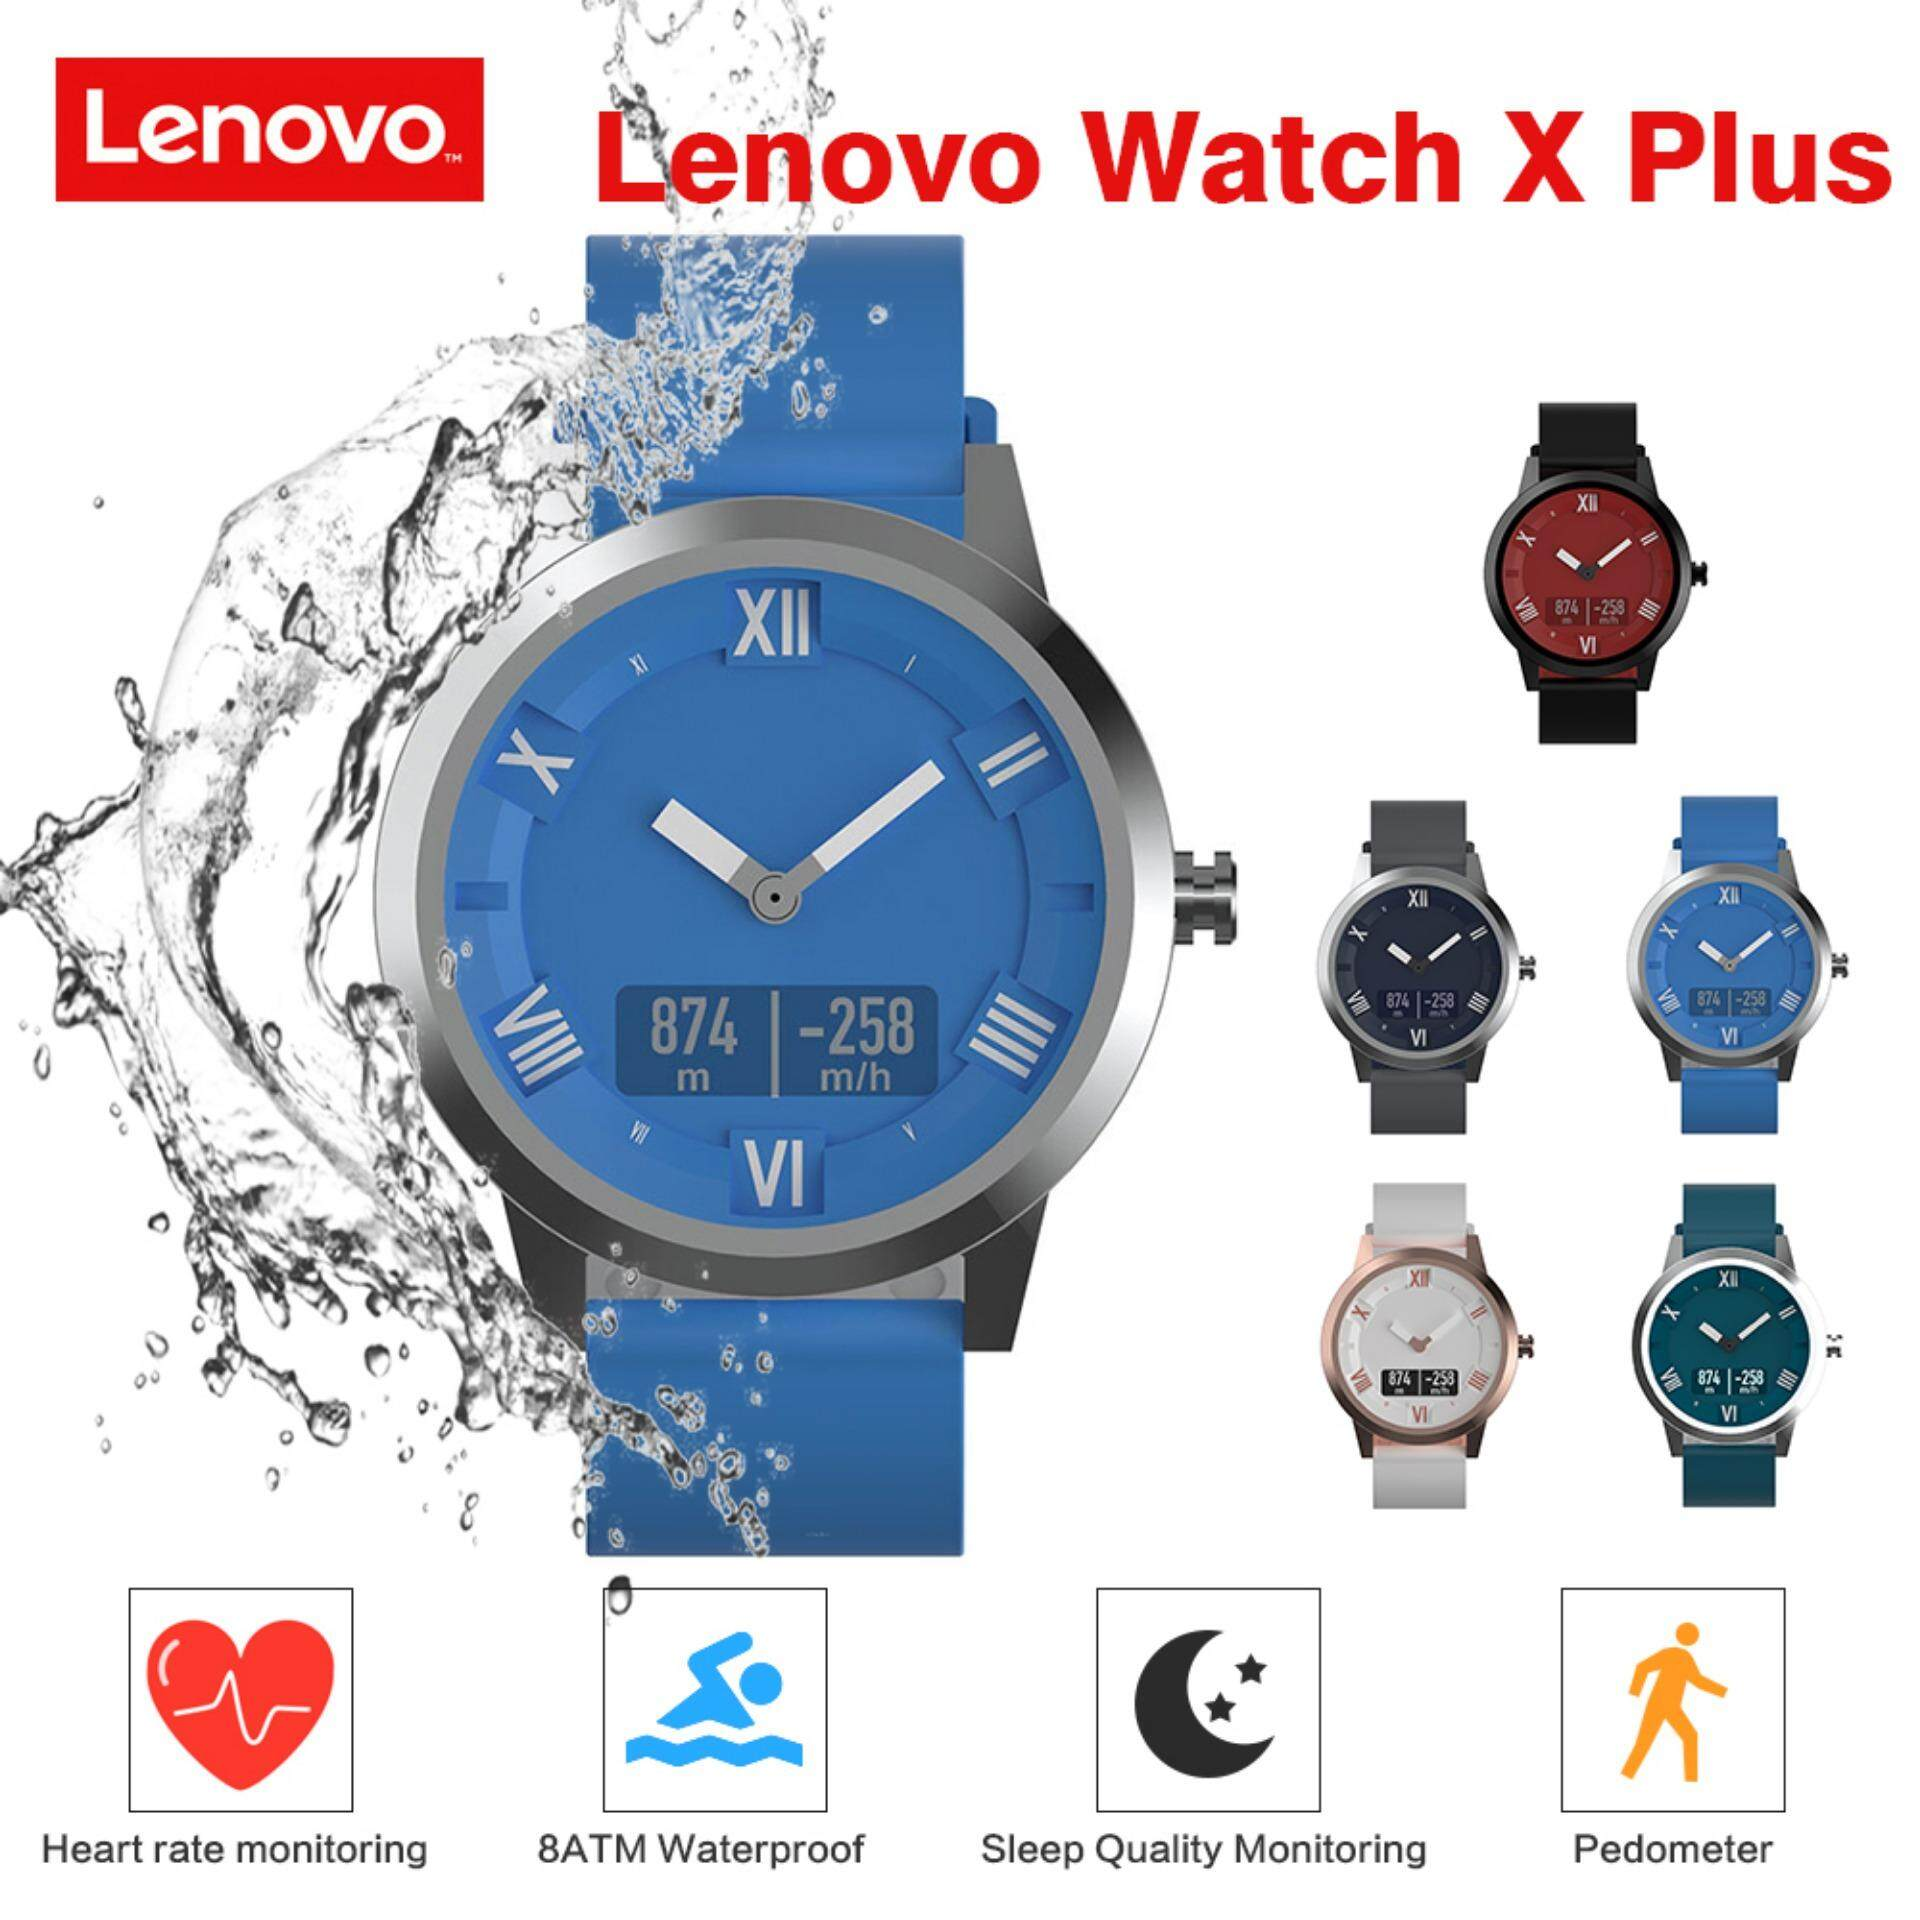 80m Waterproof Original Lenovo Watch X Plus 8atm Waterproof 45